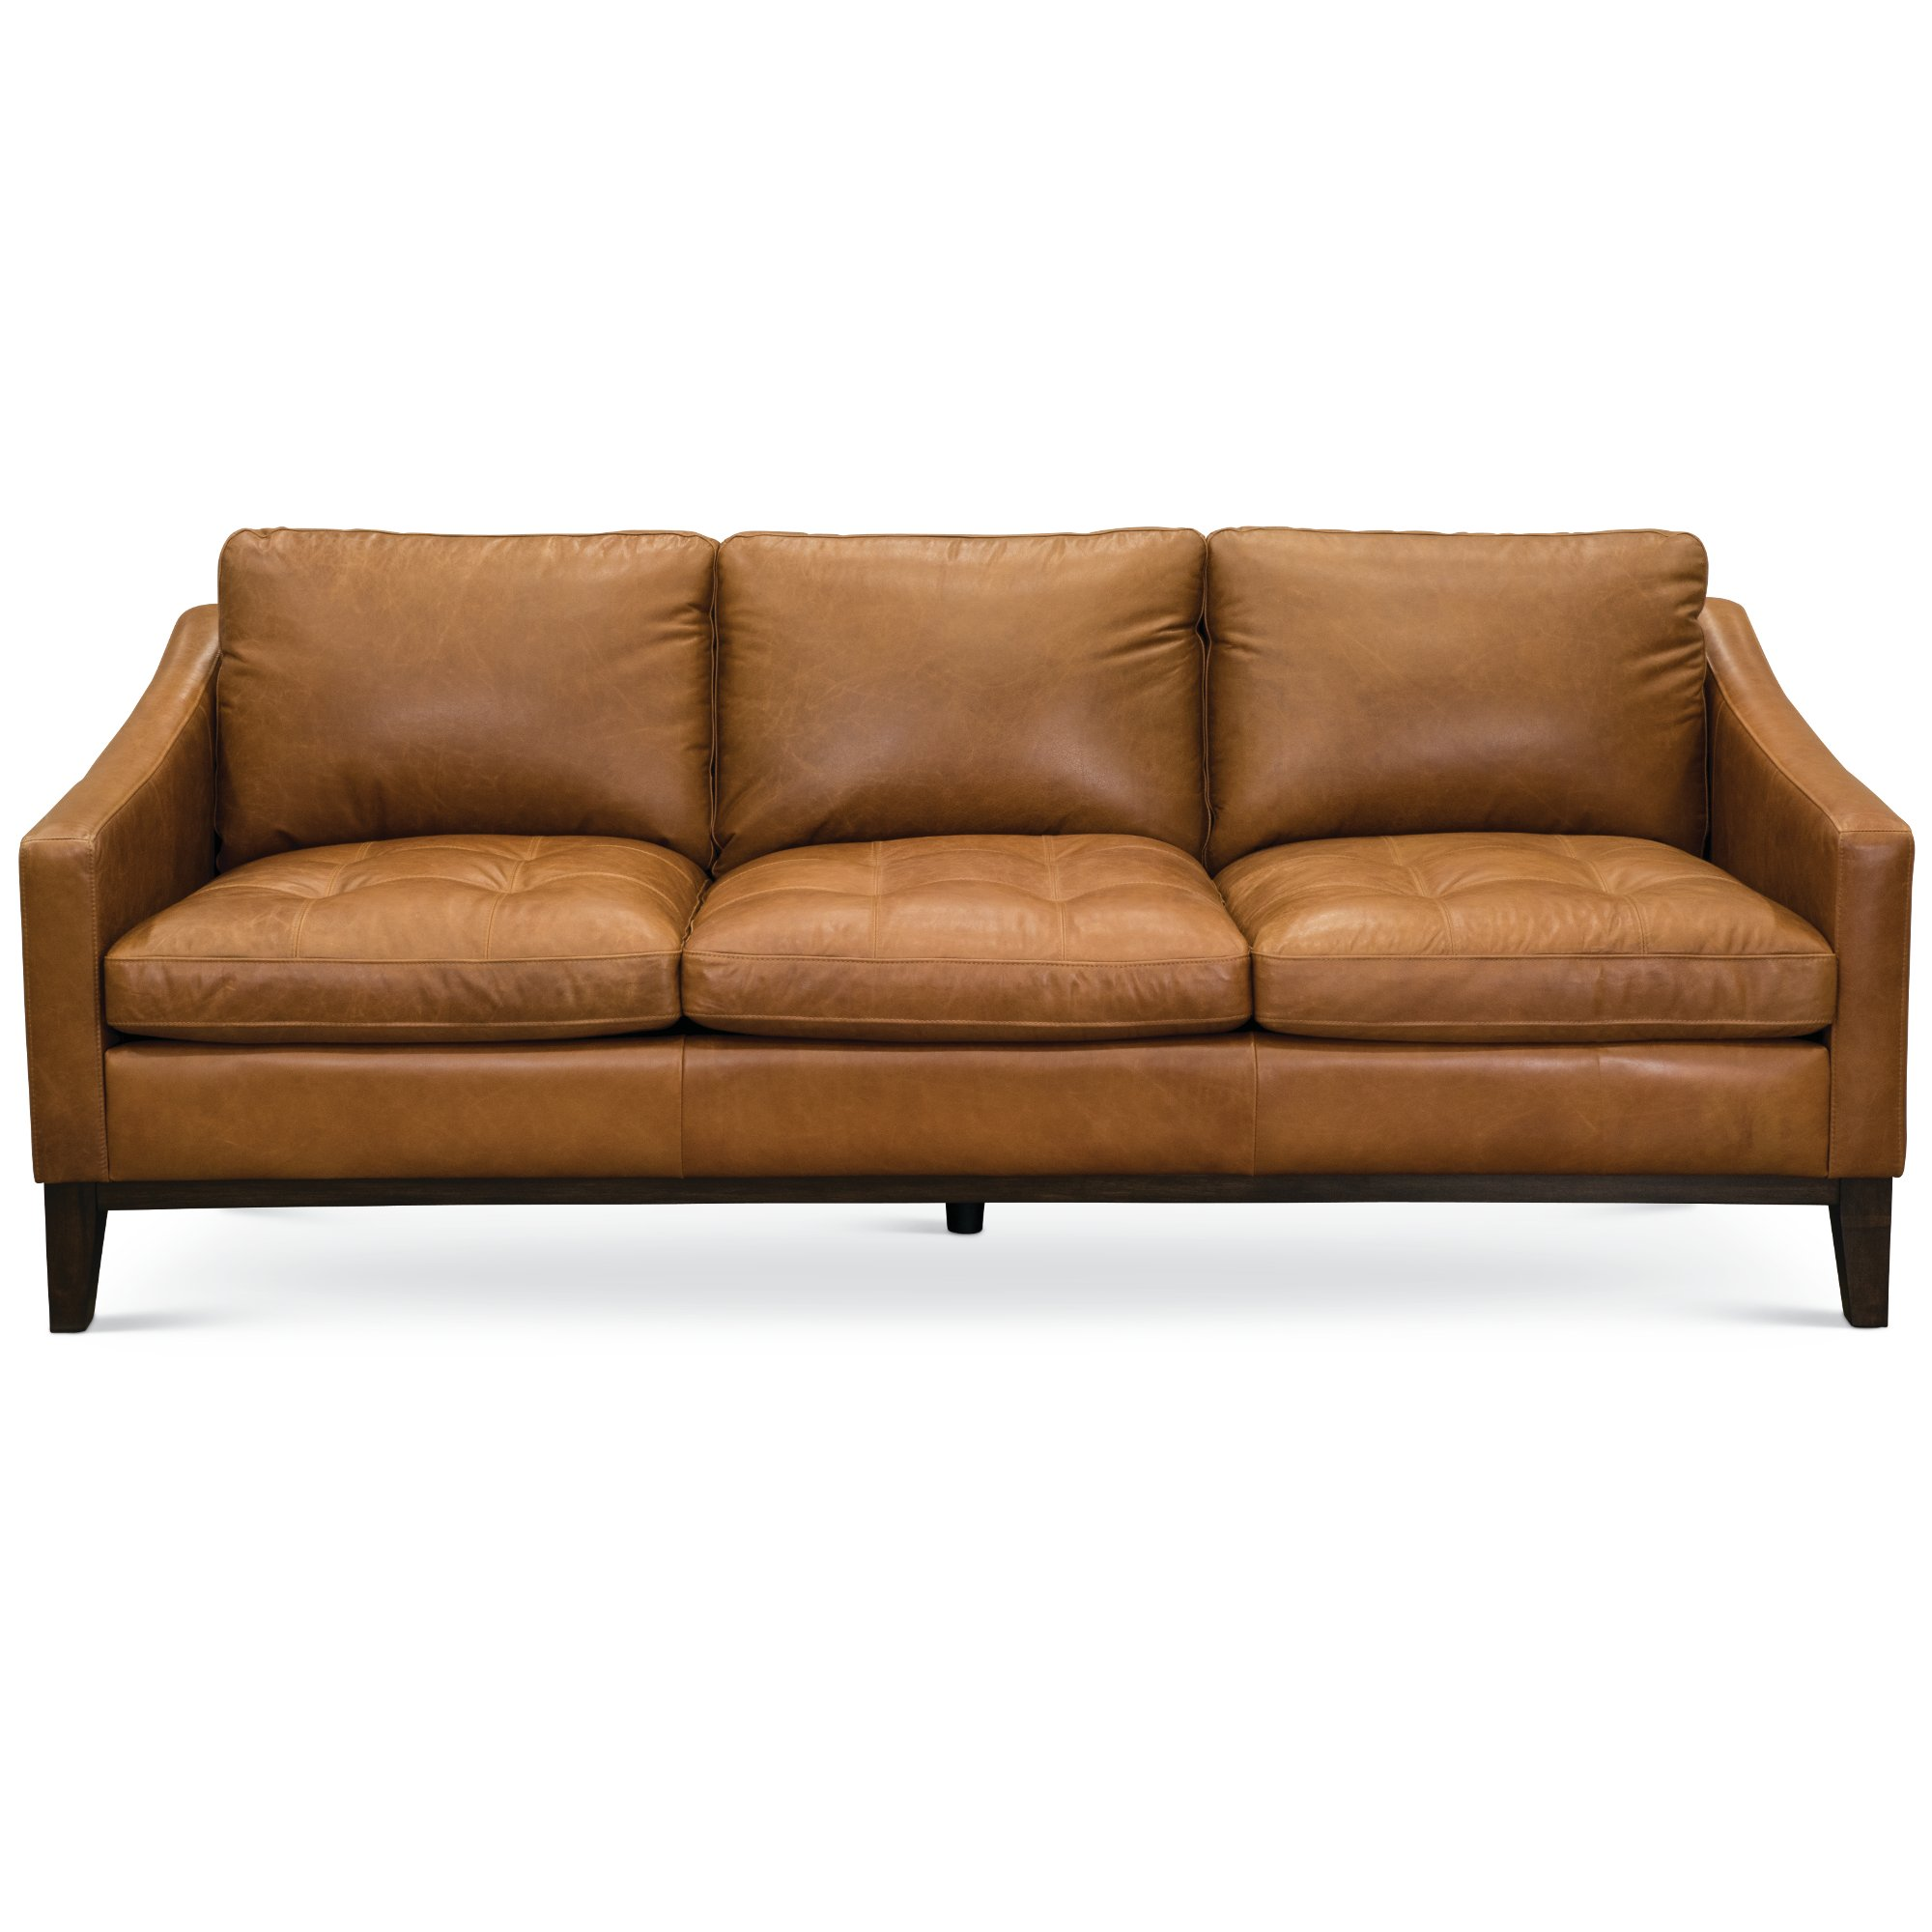 https://static.rcwilley.com/products/110968300/Mid-Century-Modern-Chestnut-Brown-Leather-Sofa---Monza-rcwilley-image1~1000.jpg?r=2